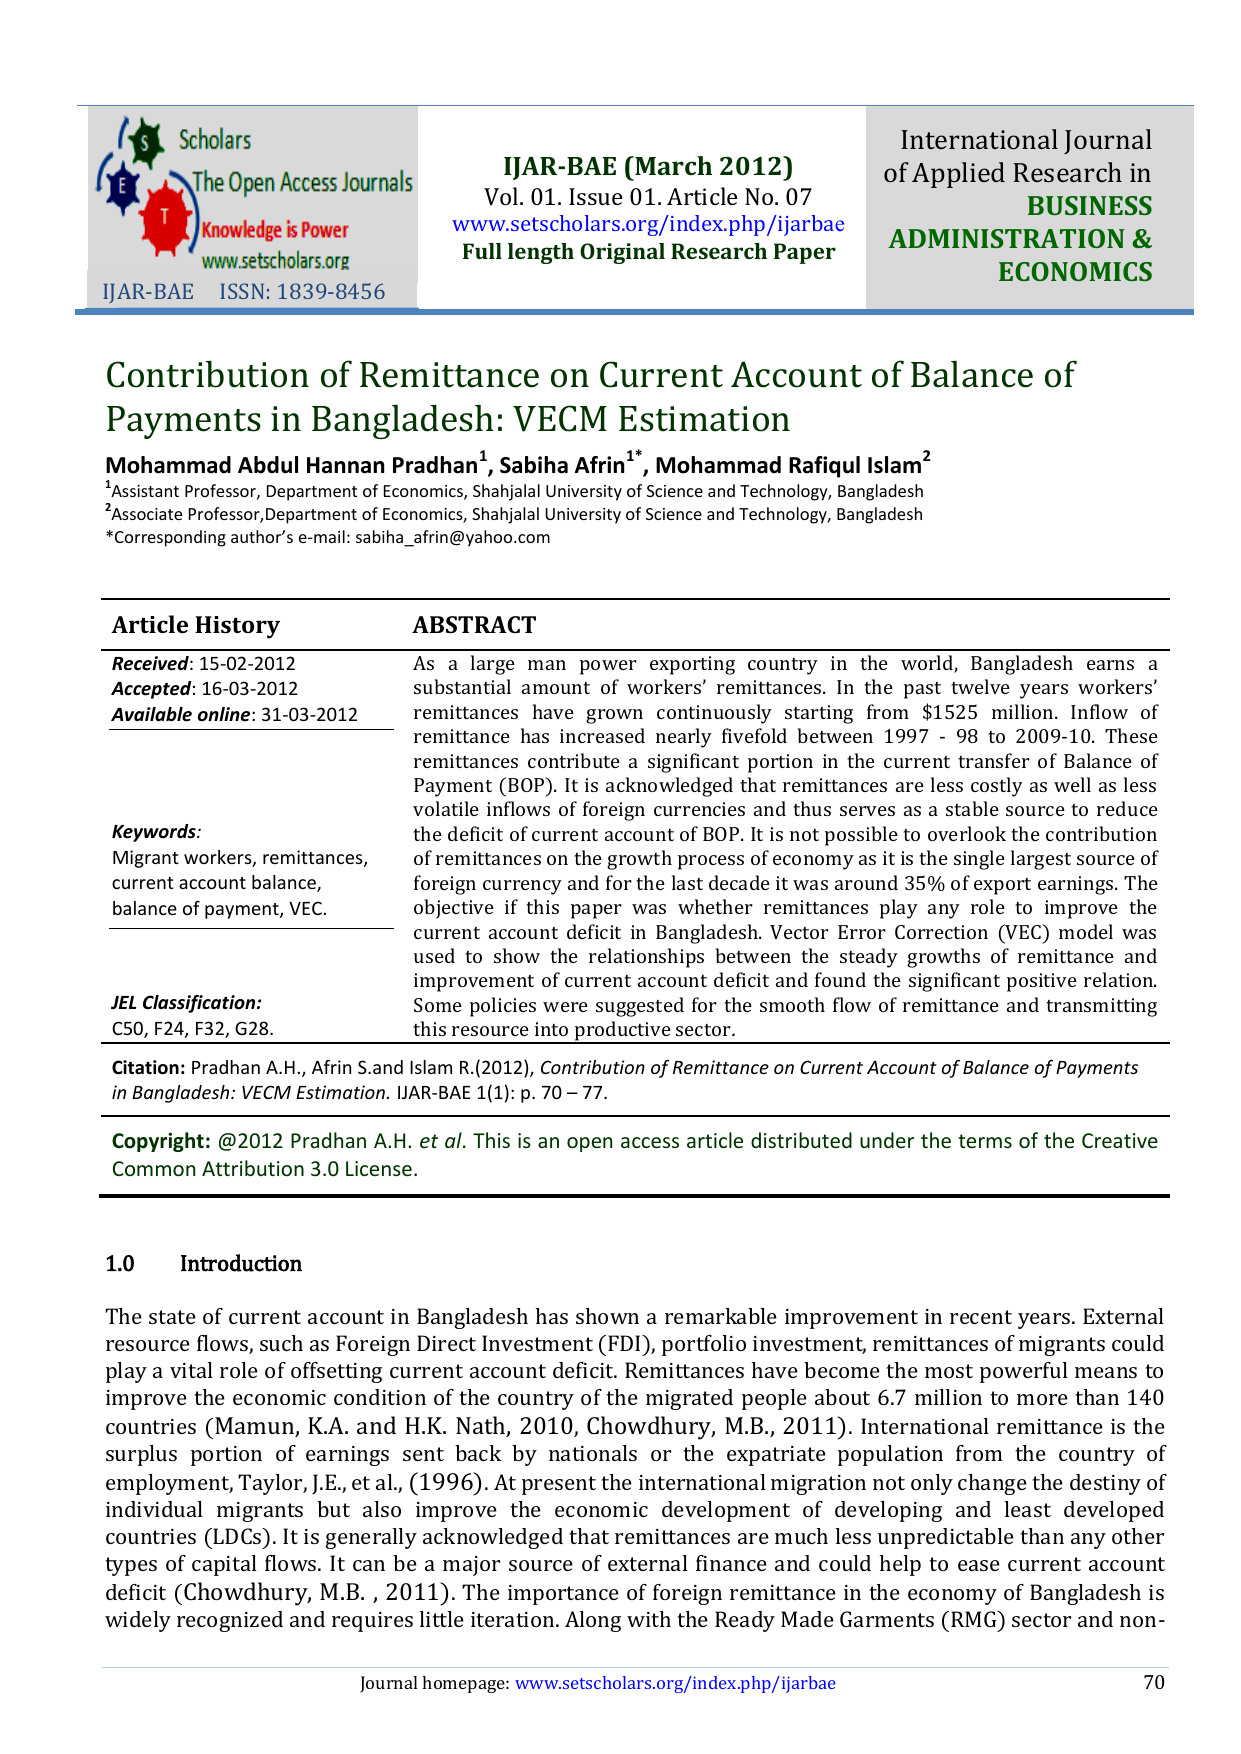 Contribution of Remittance on Current Account of Balance of